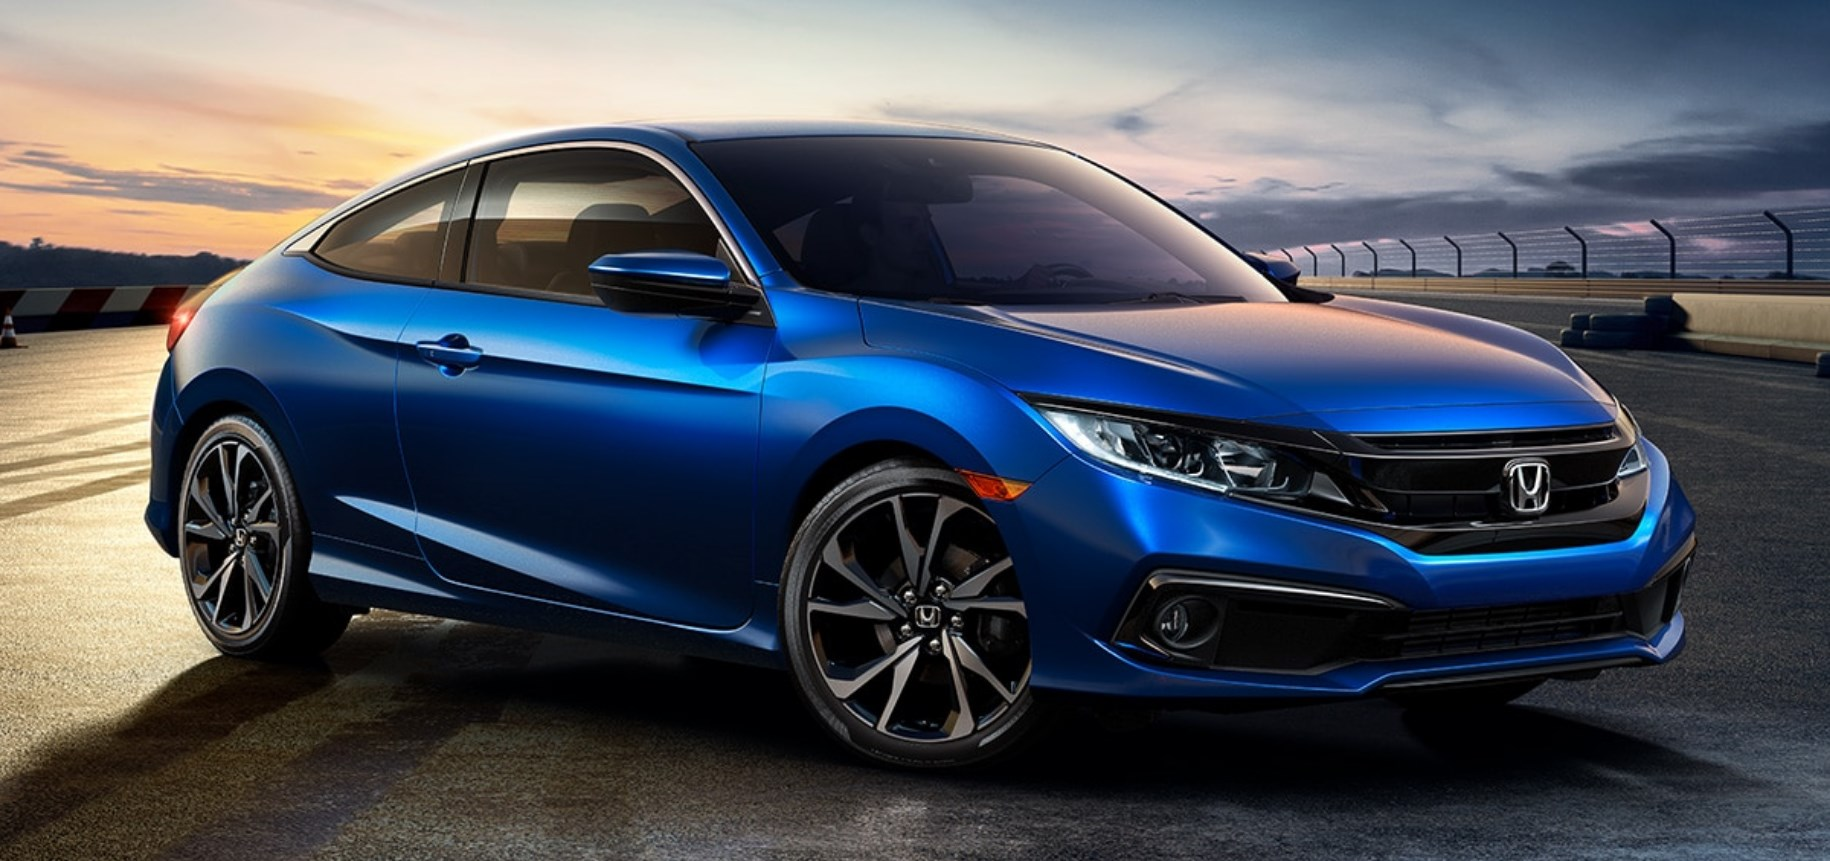 2020 Honda Civic Coupe Front Blue Exterior Picture